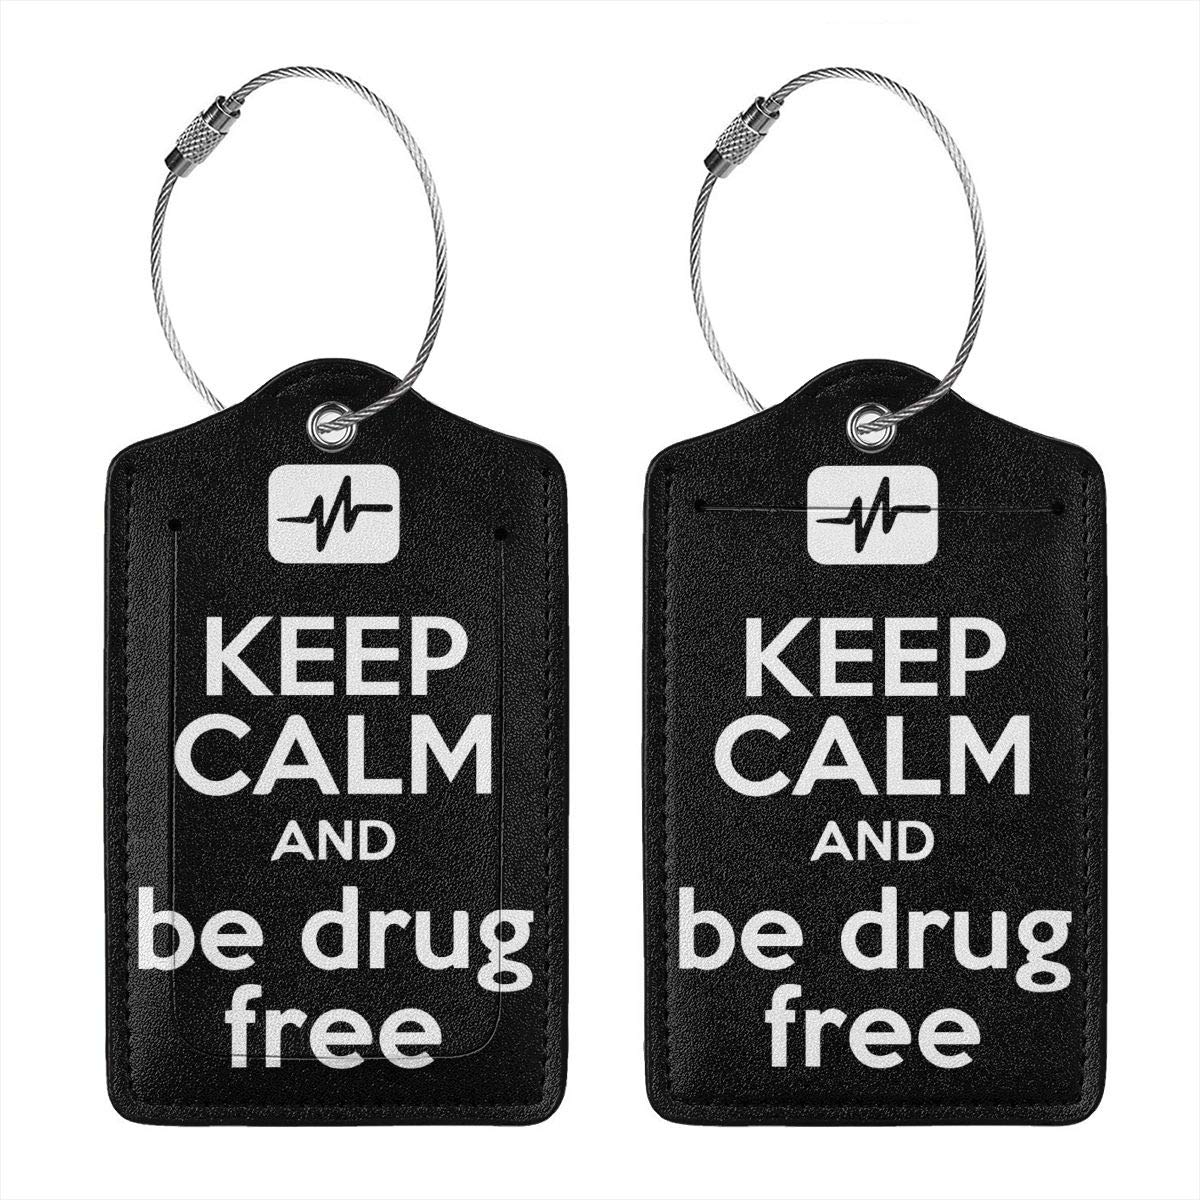 Keep Calm And Be Drug Free Travel Luggage Tags With Full Privacy Cover Leather Case And Stainless Steel Loop